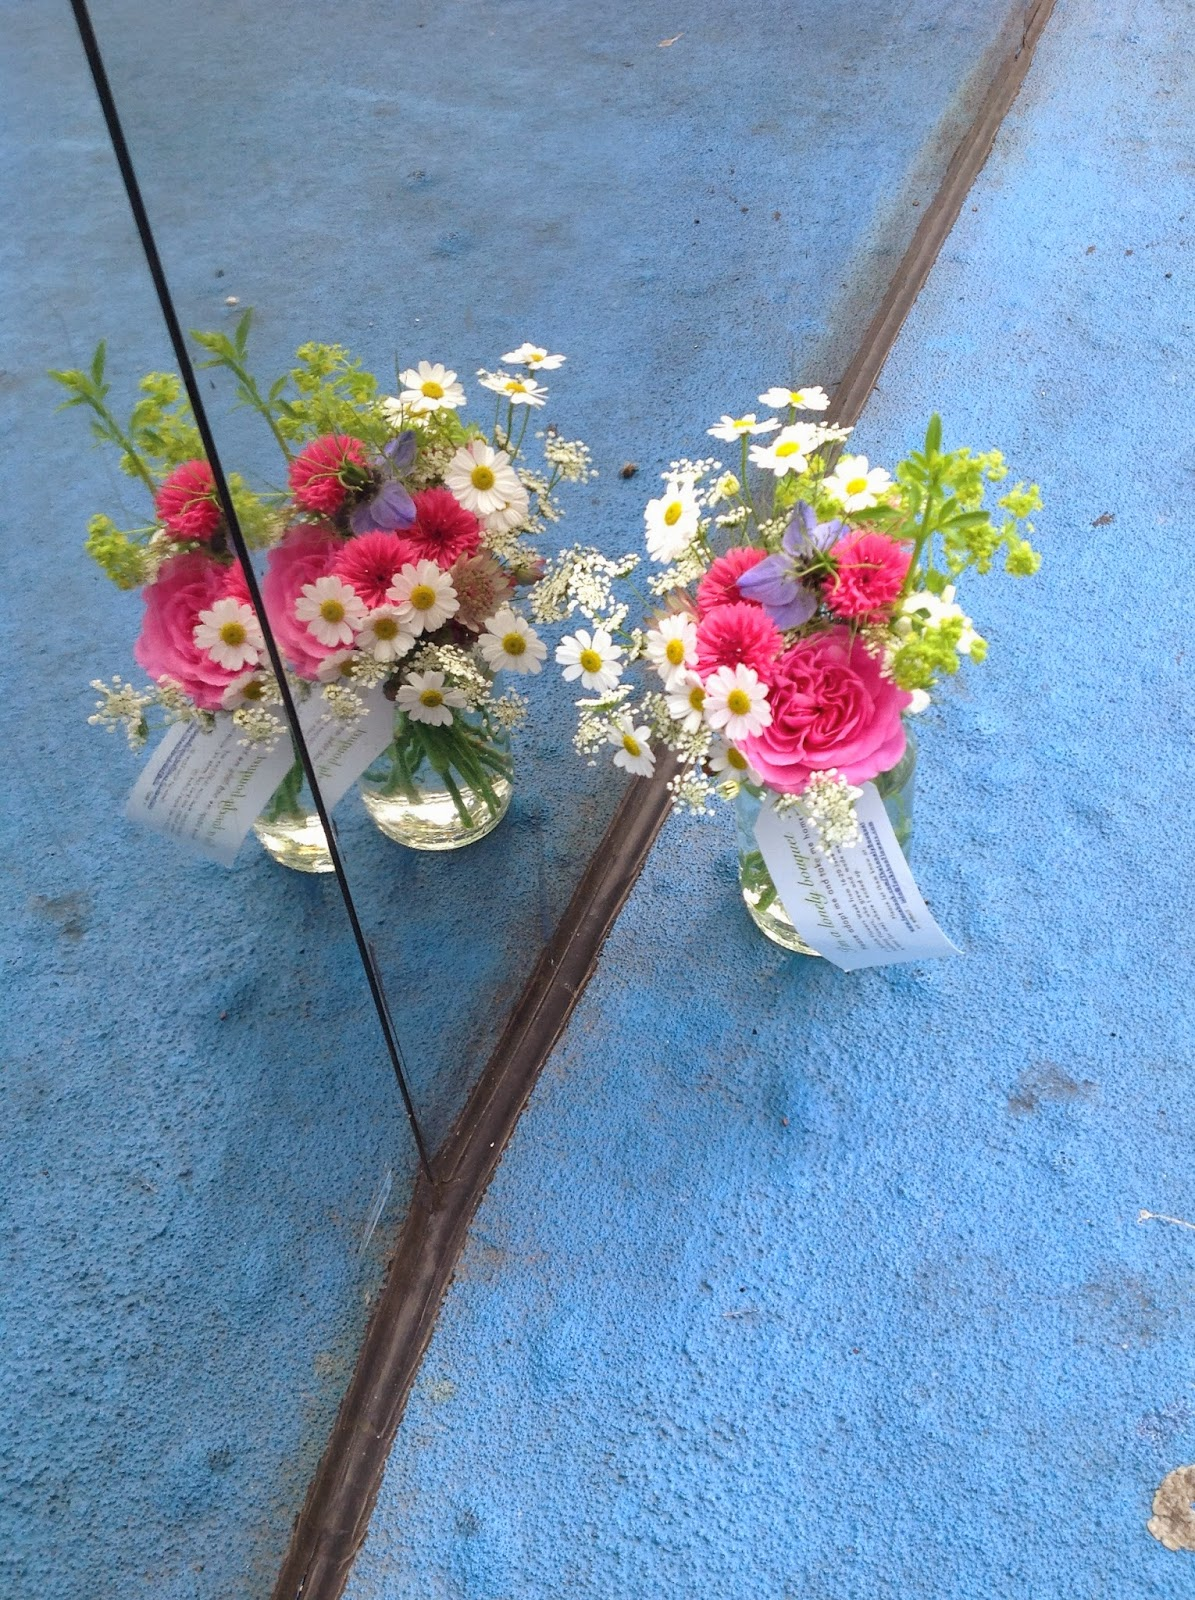 British flowers Birmingham.  Grown by Tuckshop Flowers B30